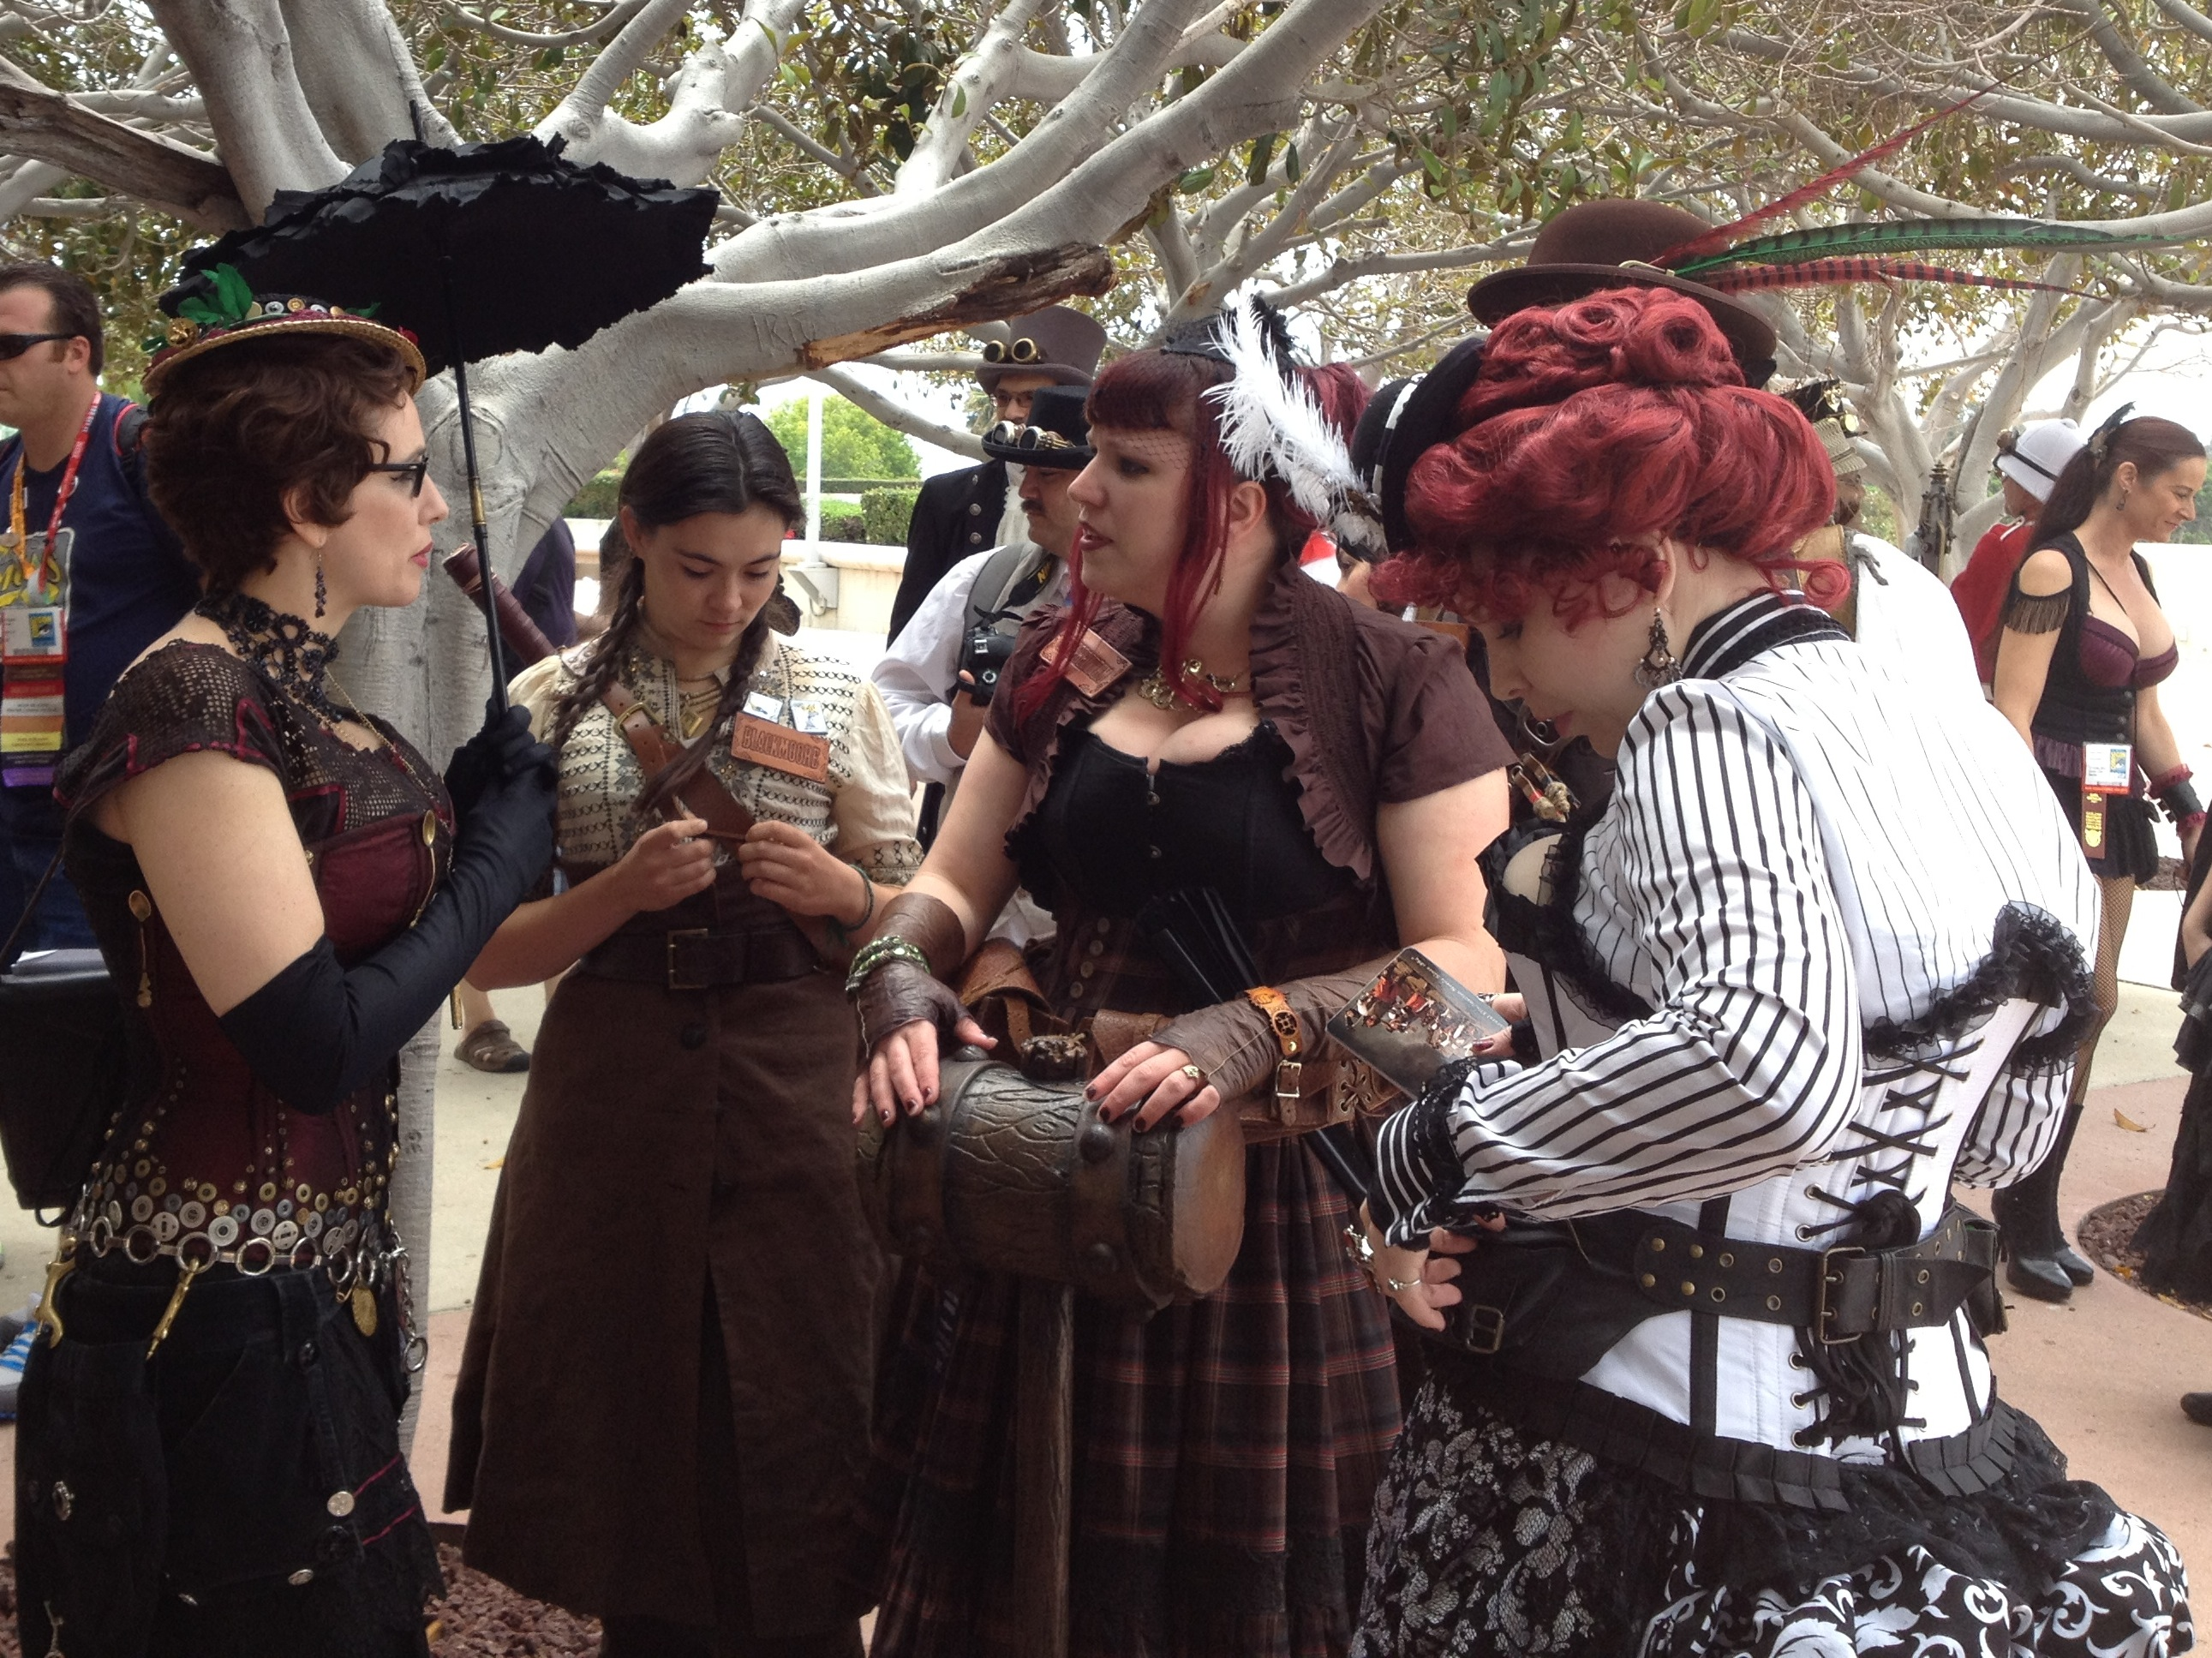 Teh Steampunk Gathering on Saturday